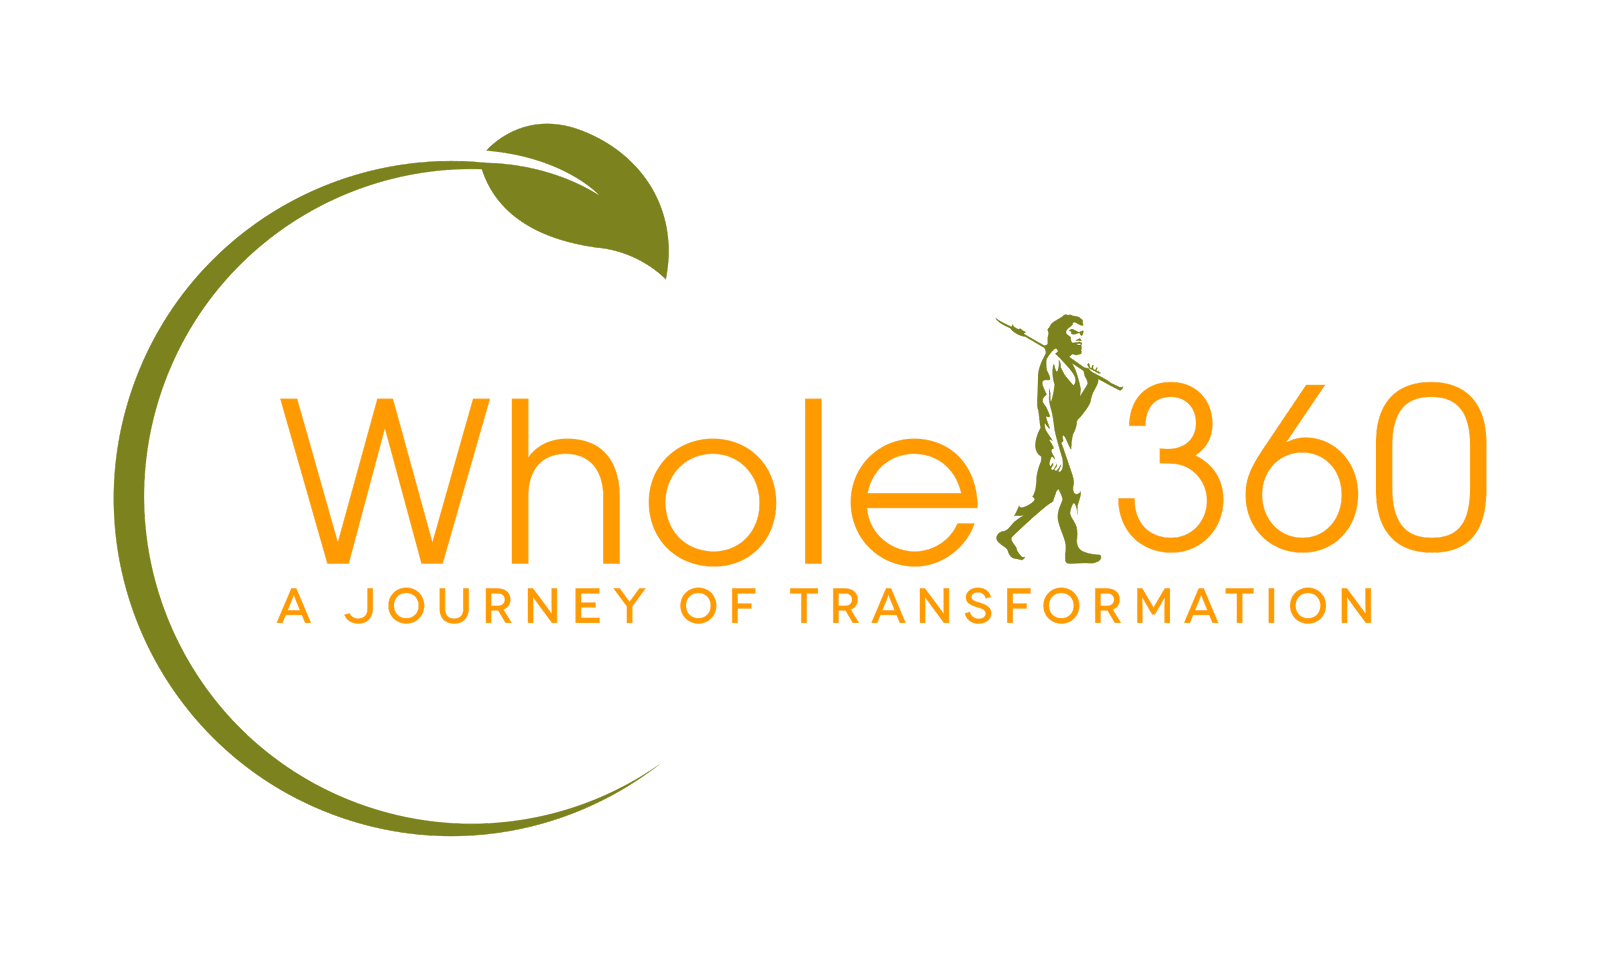 Whole360 - A journey of transformation